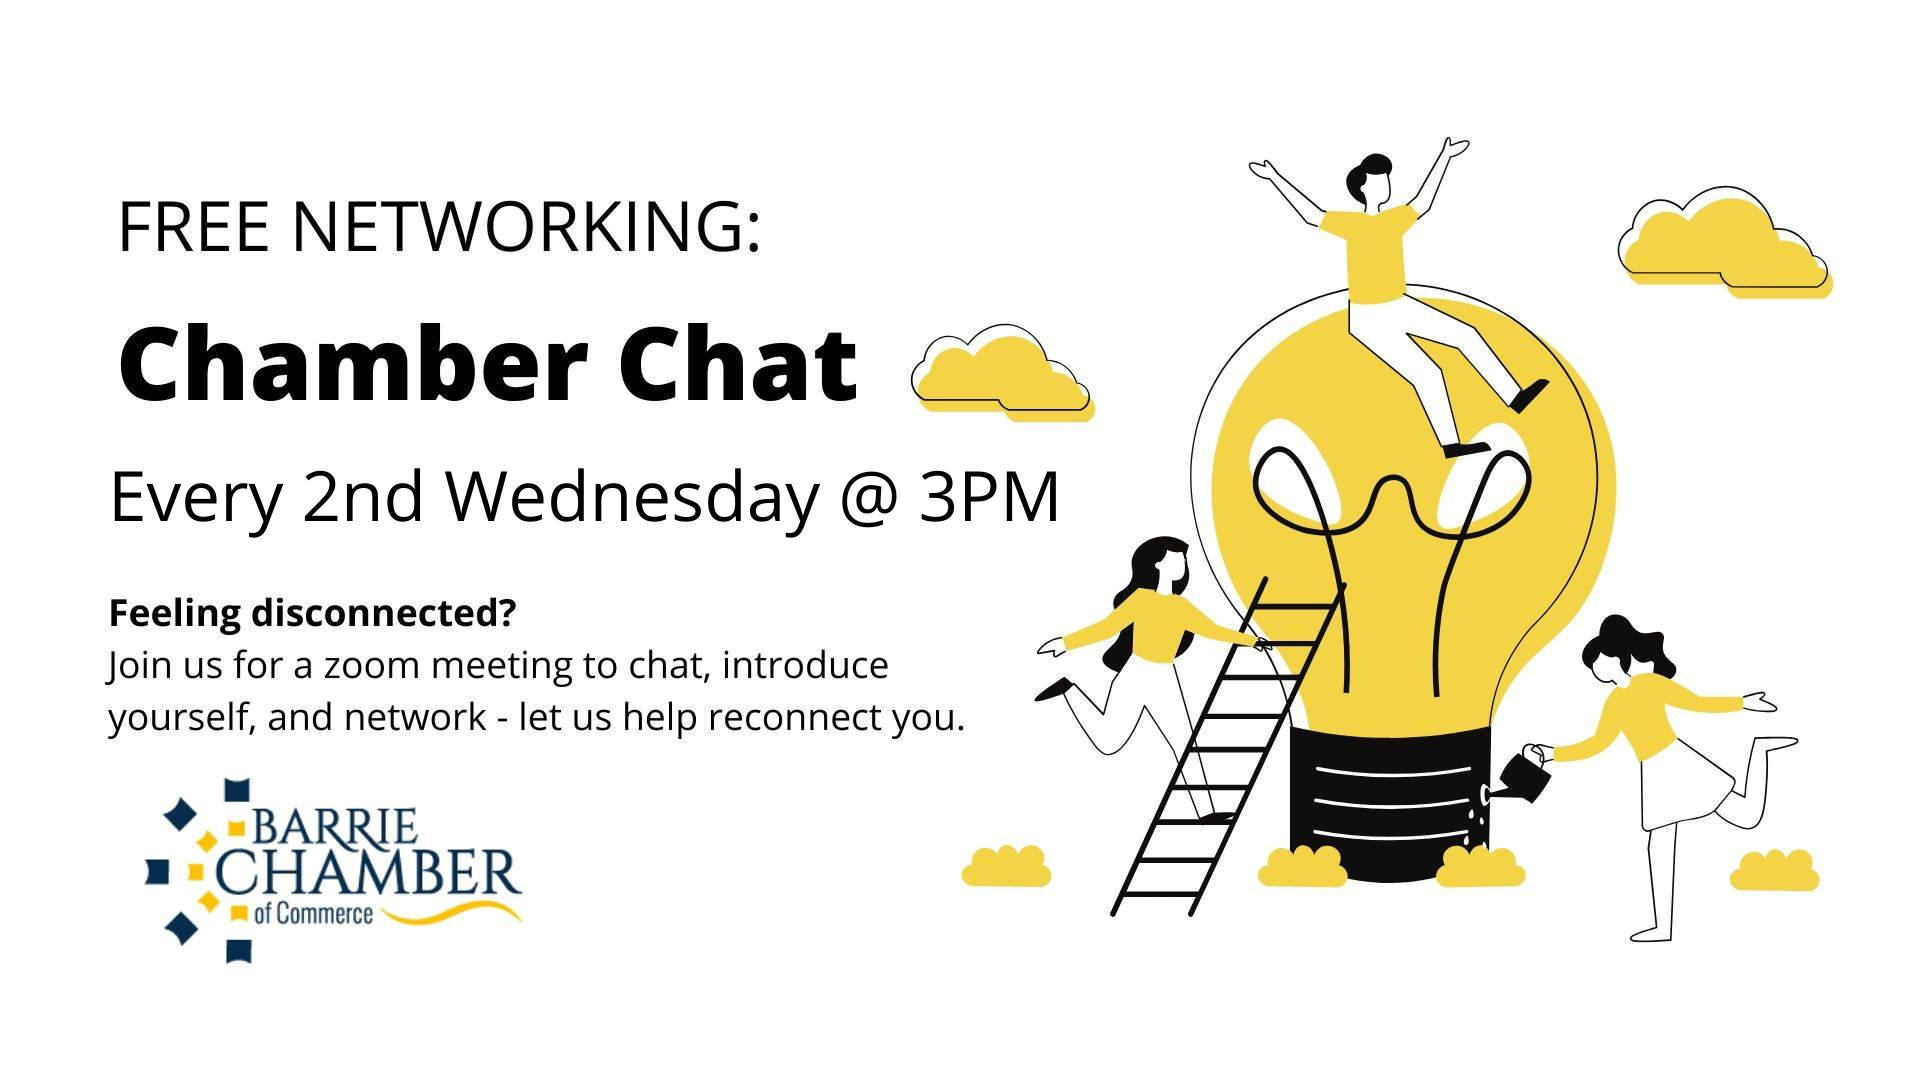 Chamber Chat - Every 2nd Wednesday @ 3PM